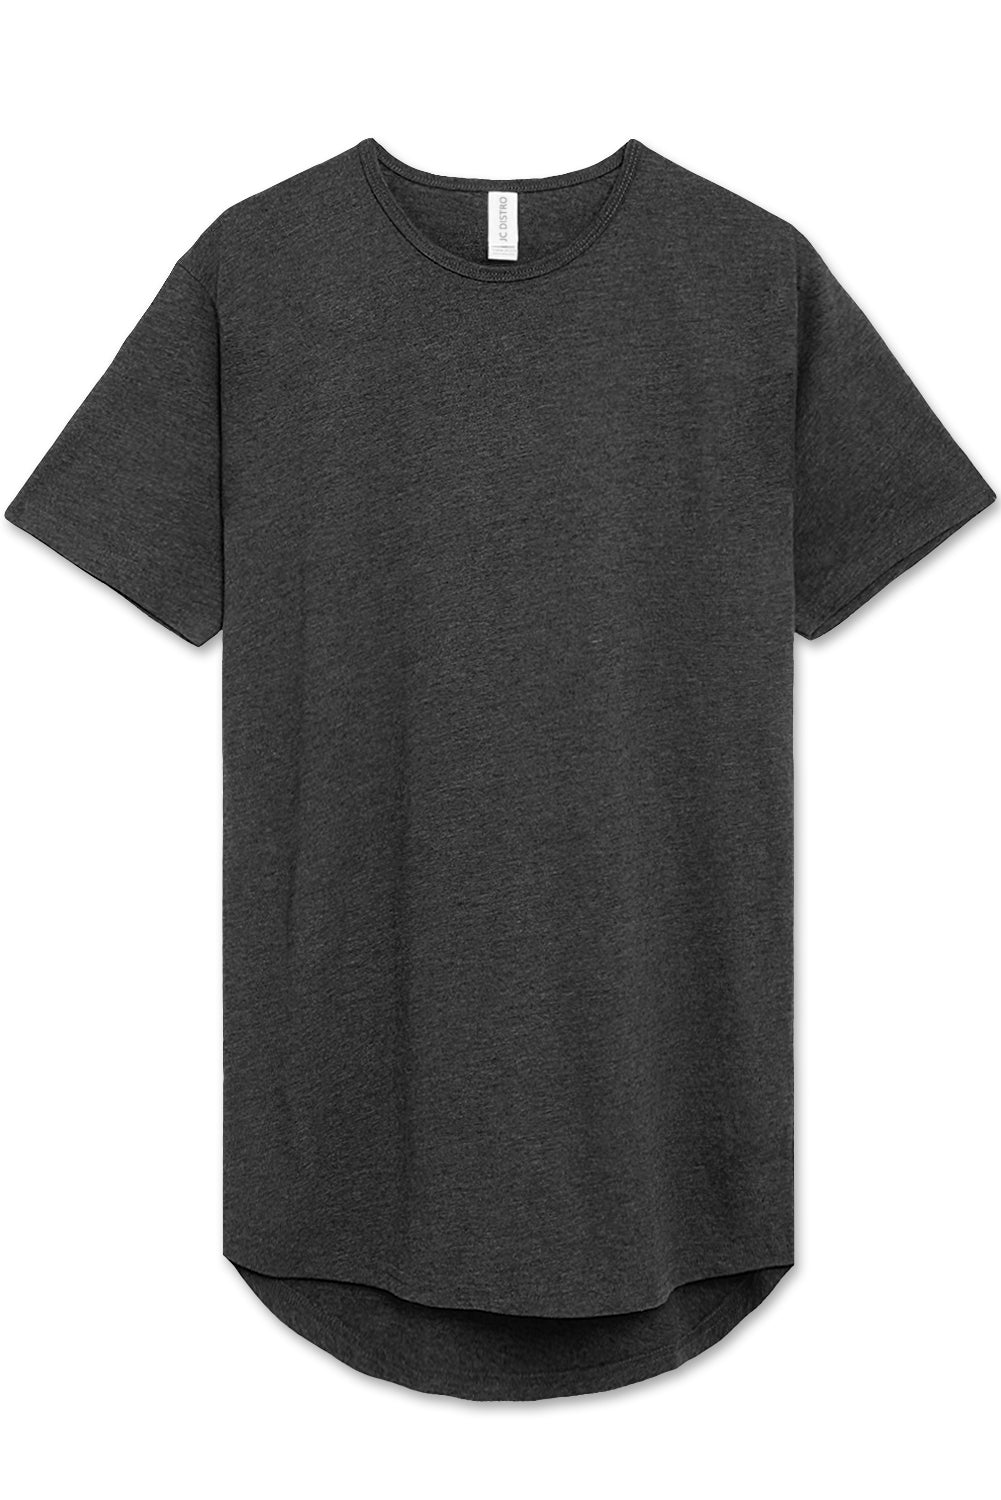 Soft-Fabric Scallop Hem T-shirt (H Black)